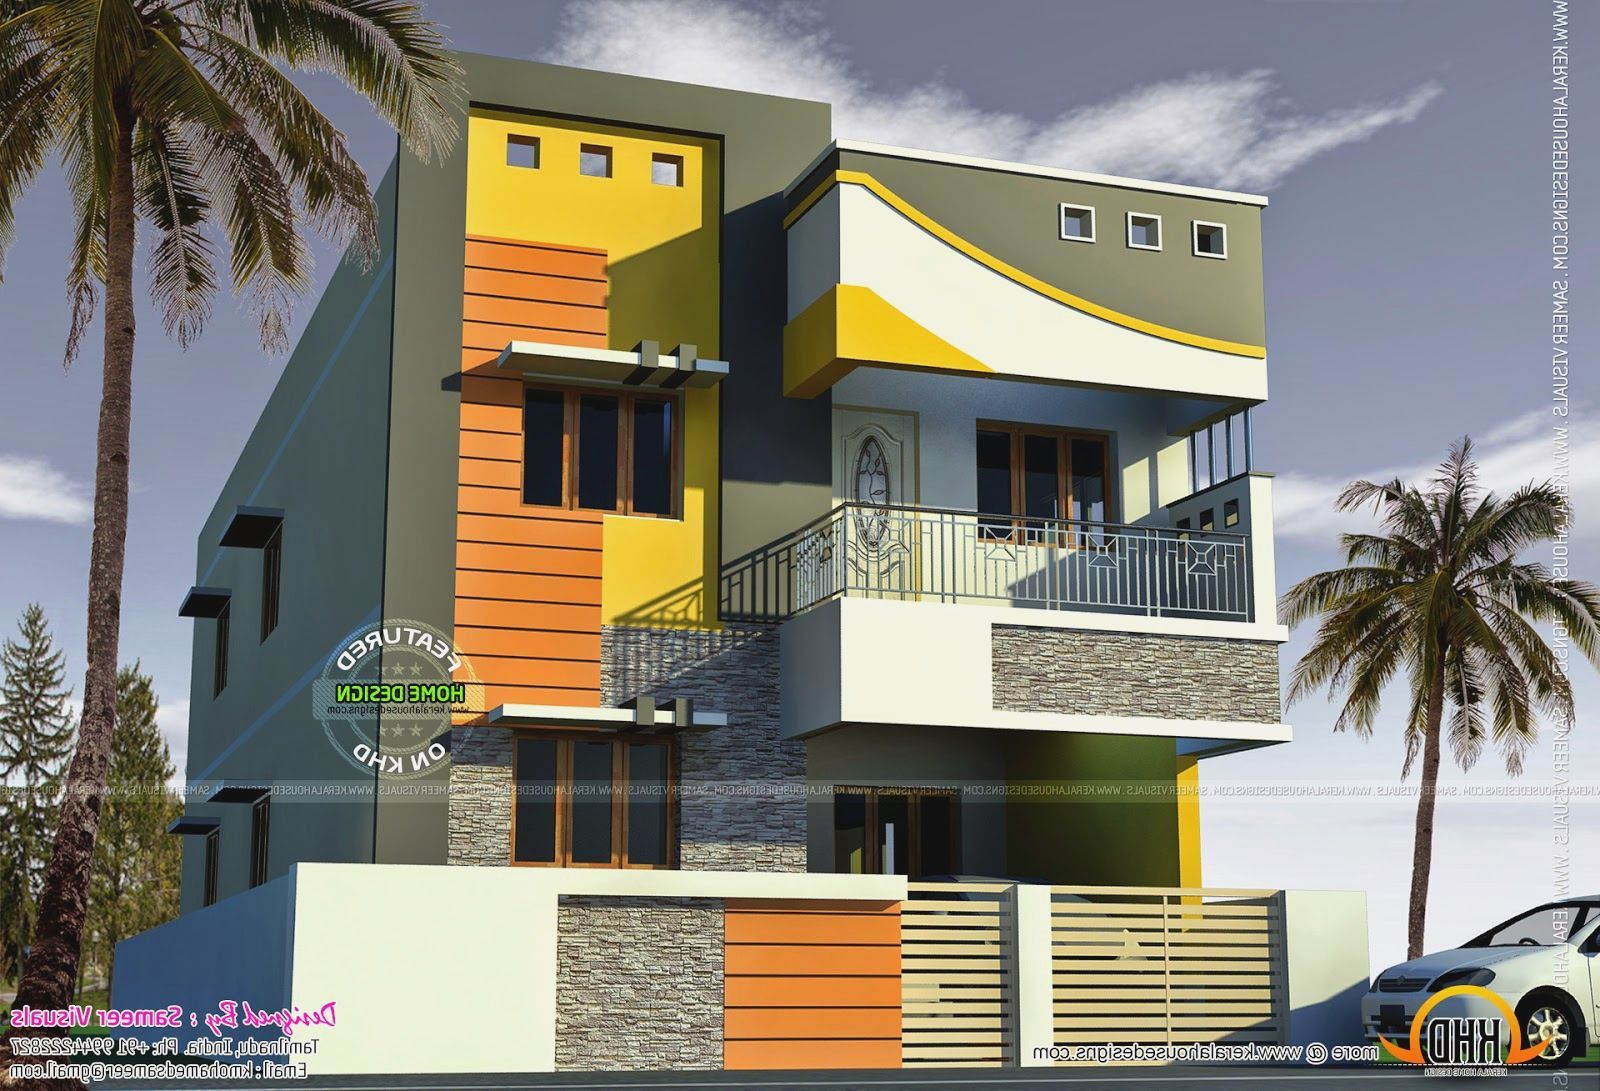 Tamilnadu house models more picture tamilnadu house models for Traditional house designs in tamilnadu